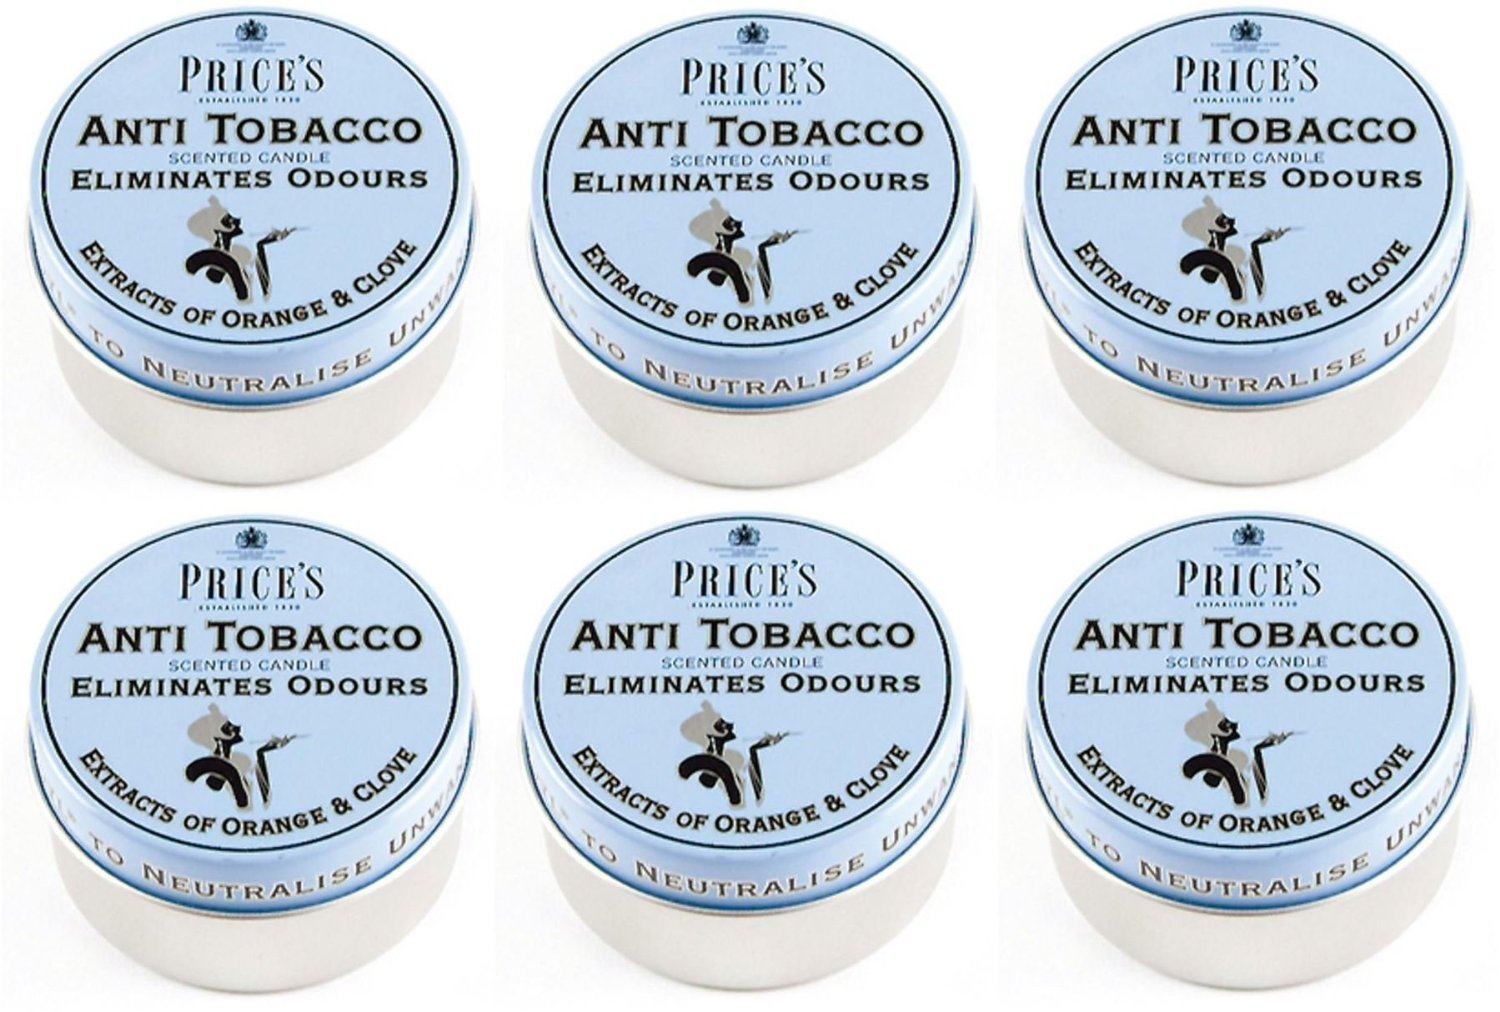 6 x Prices Anti Tobacco Candle In Tin Eliminates Tobacco & Smoking Odours by Price's Candles Prices Candles